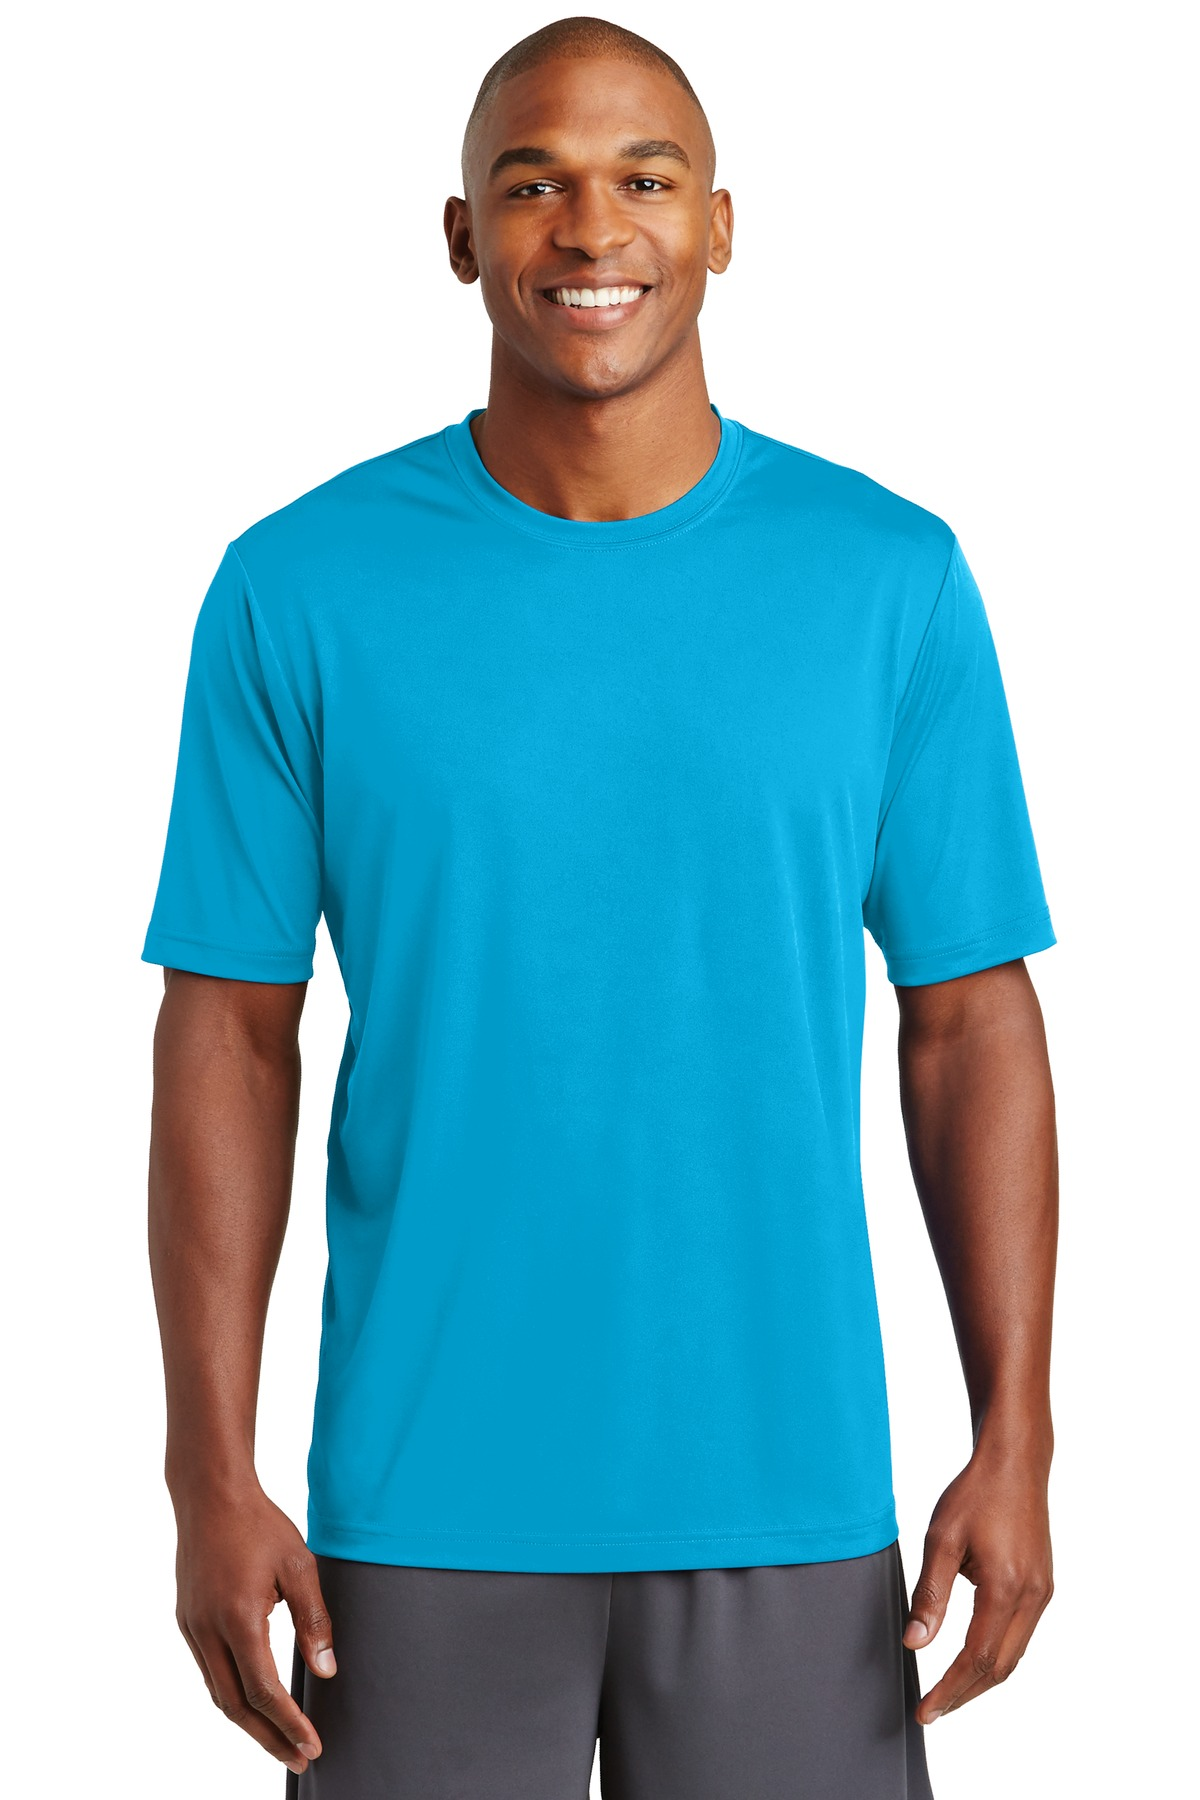 Sport tek posicharge tough tee st320 phelps for The queensboro shirt company